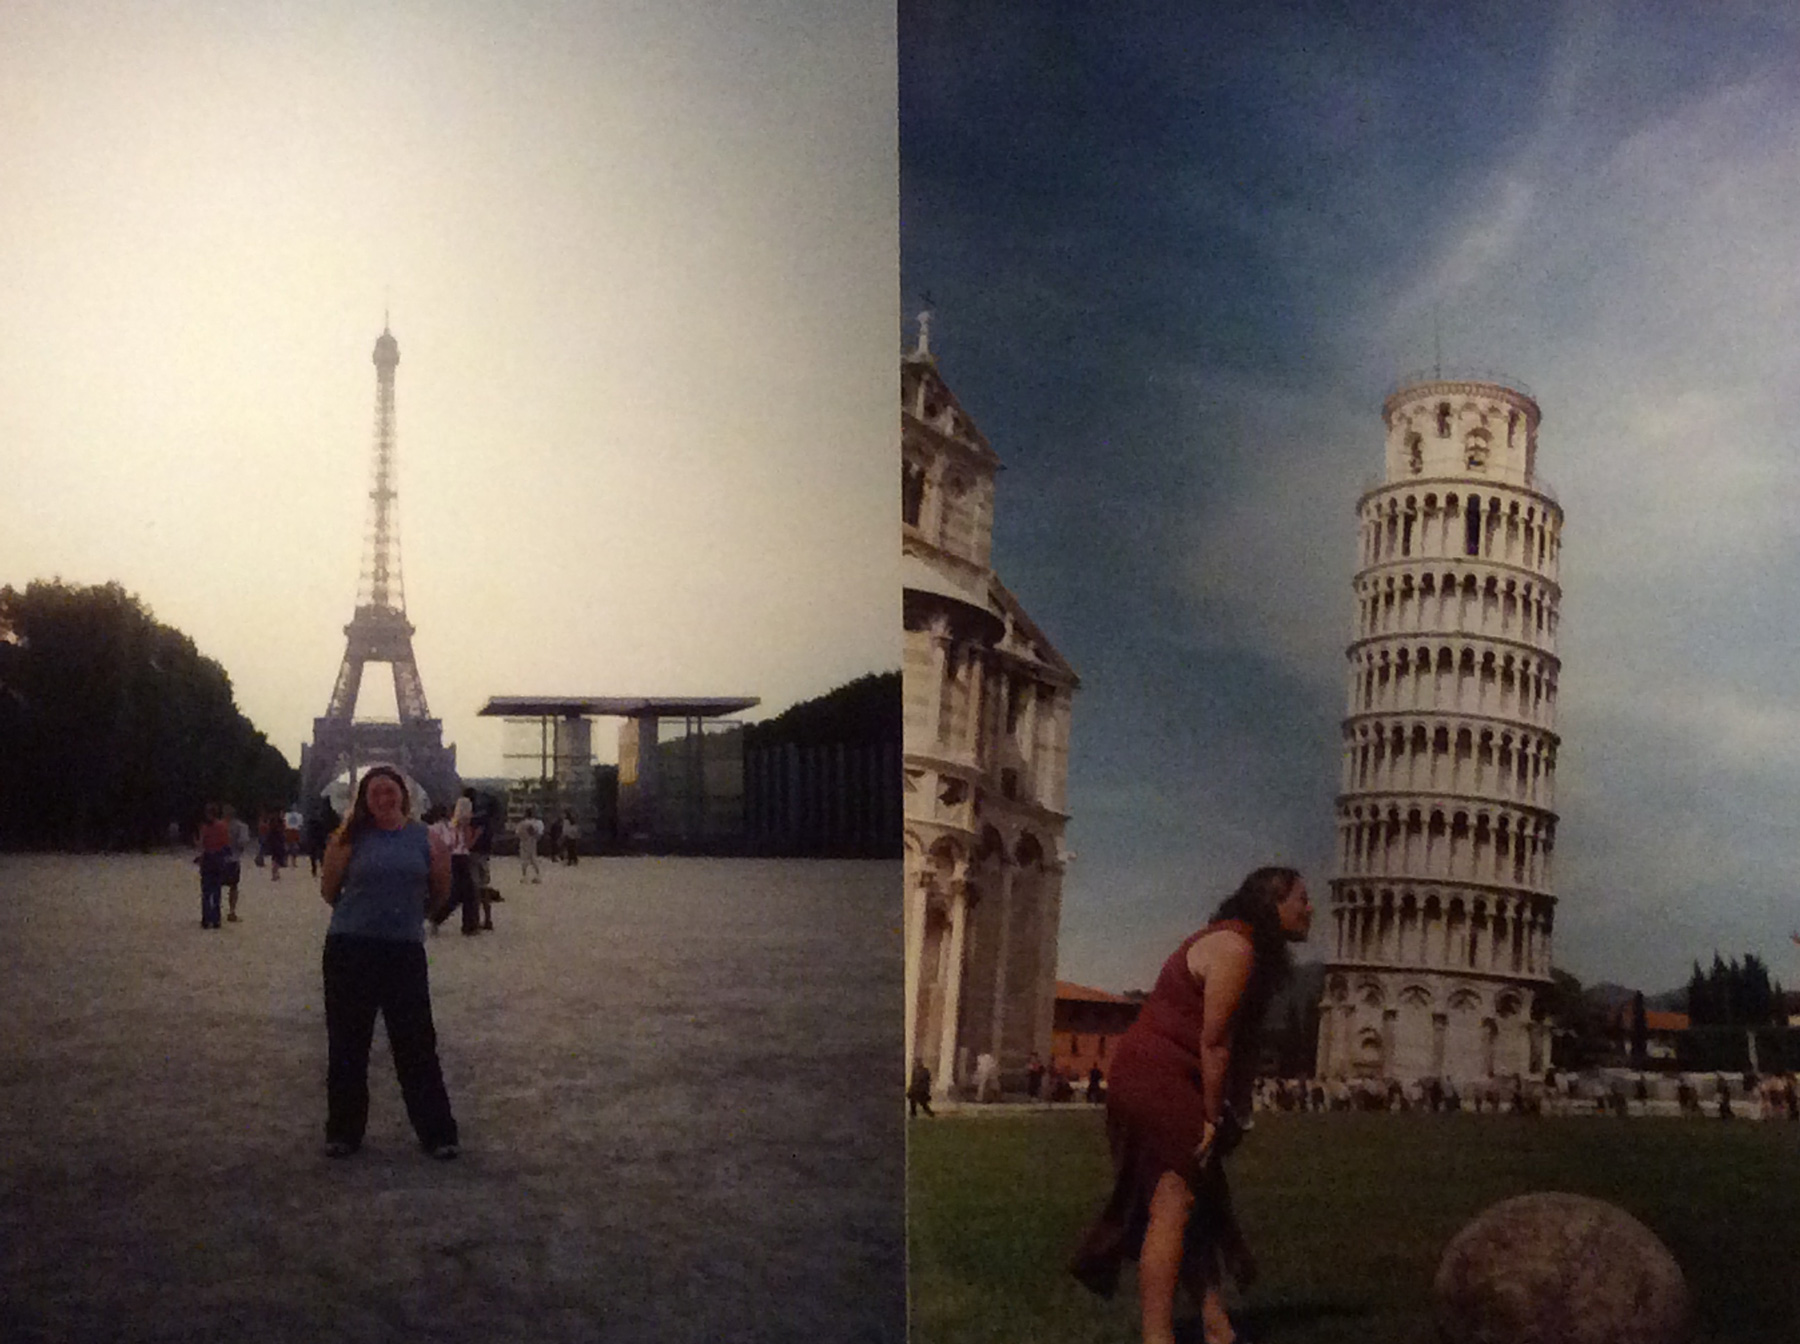 Me at the Eiffel Tower and The Leaning Tower of Pisa